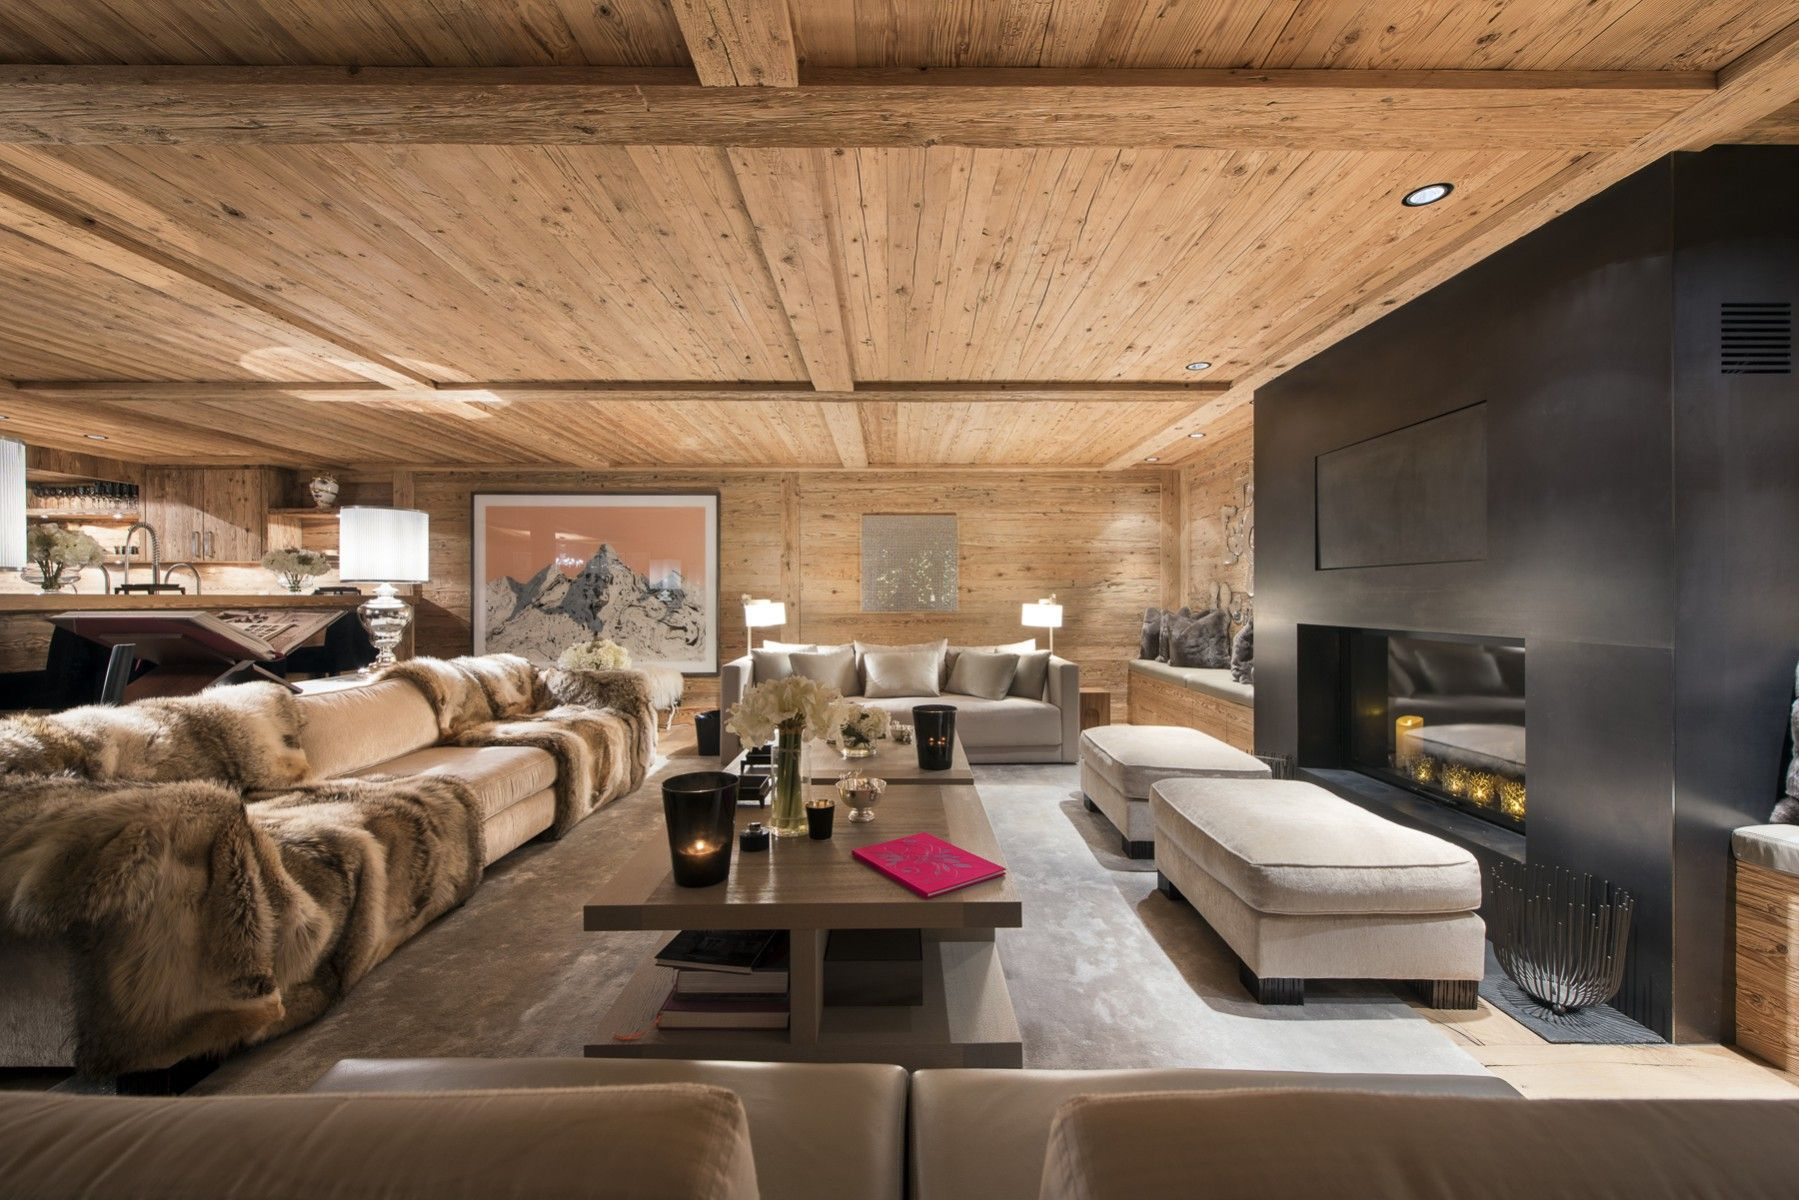 Amala top luxus chalet in gstaad hotel pinterest chalets tops und lodges - Deco kamer chalet berg ...